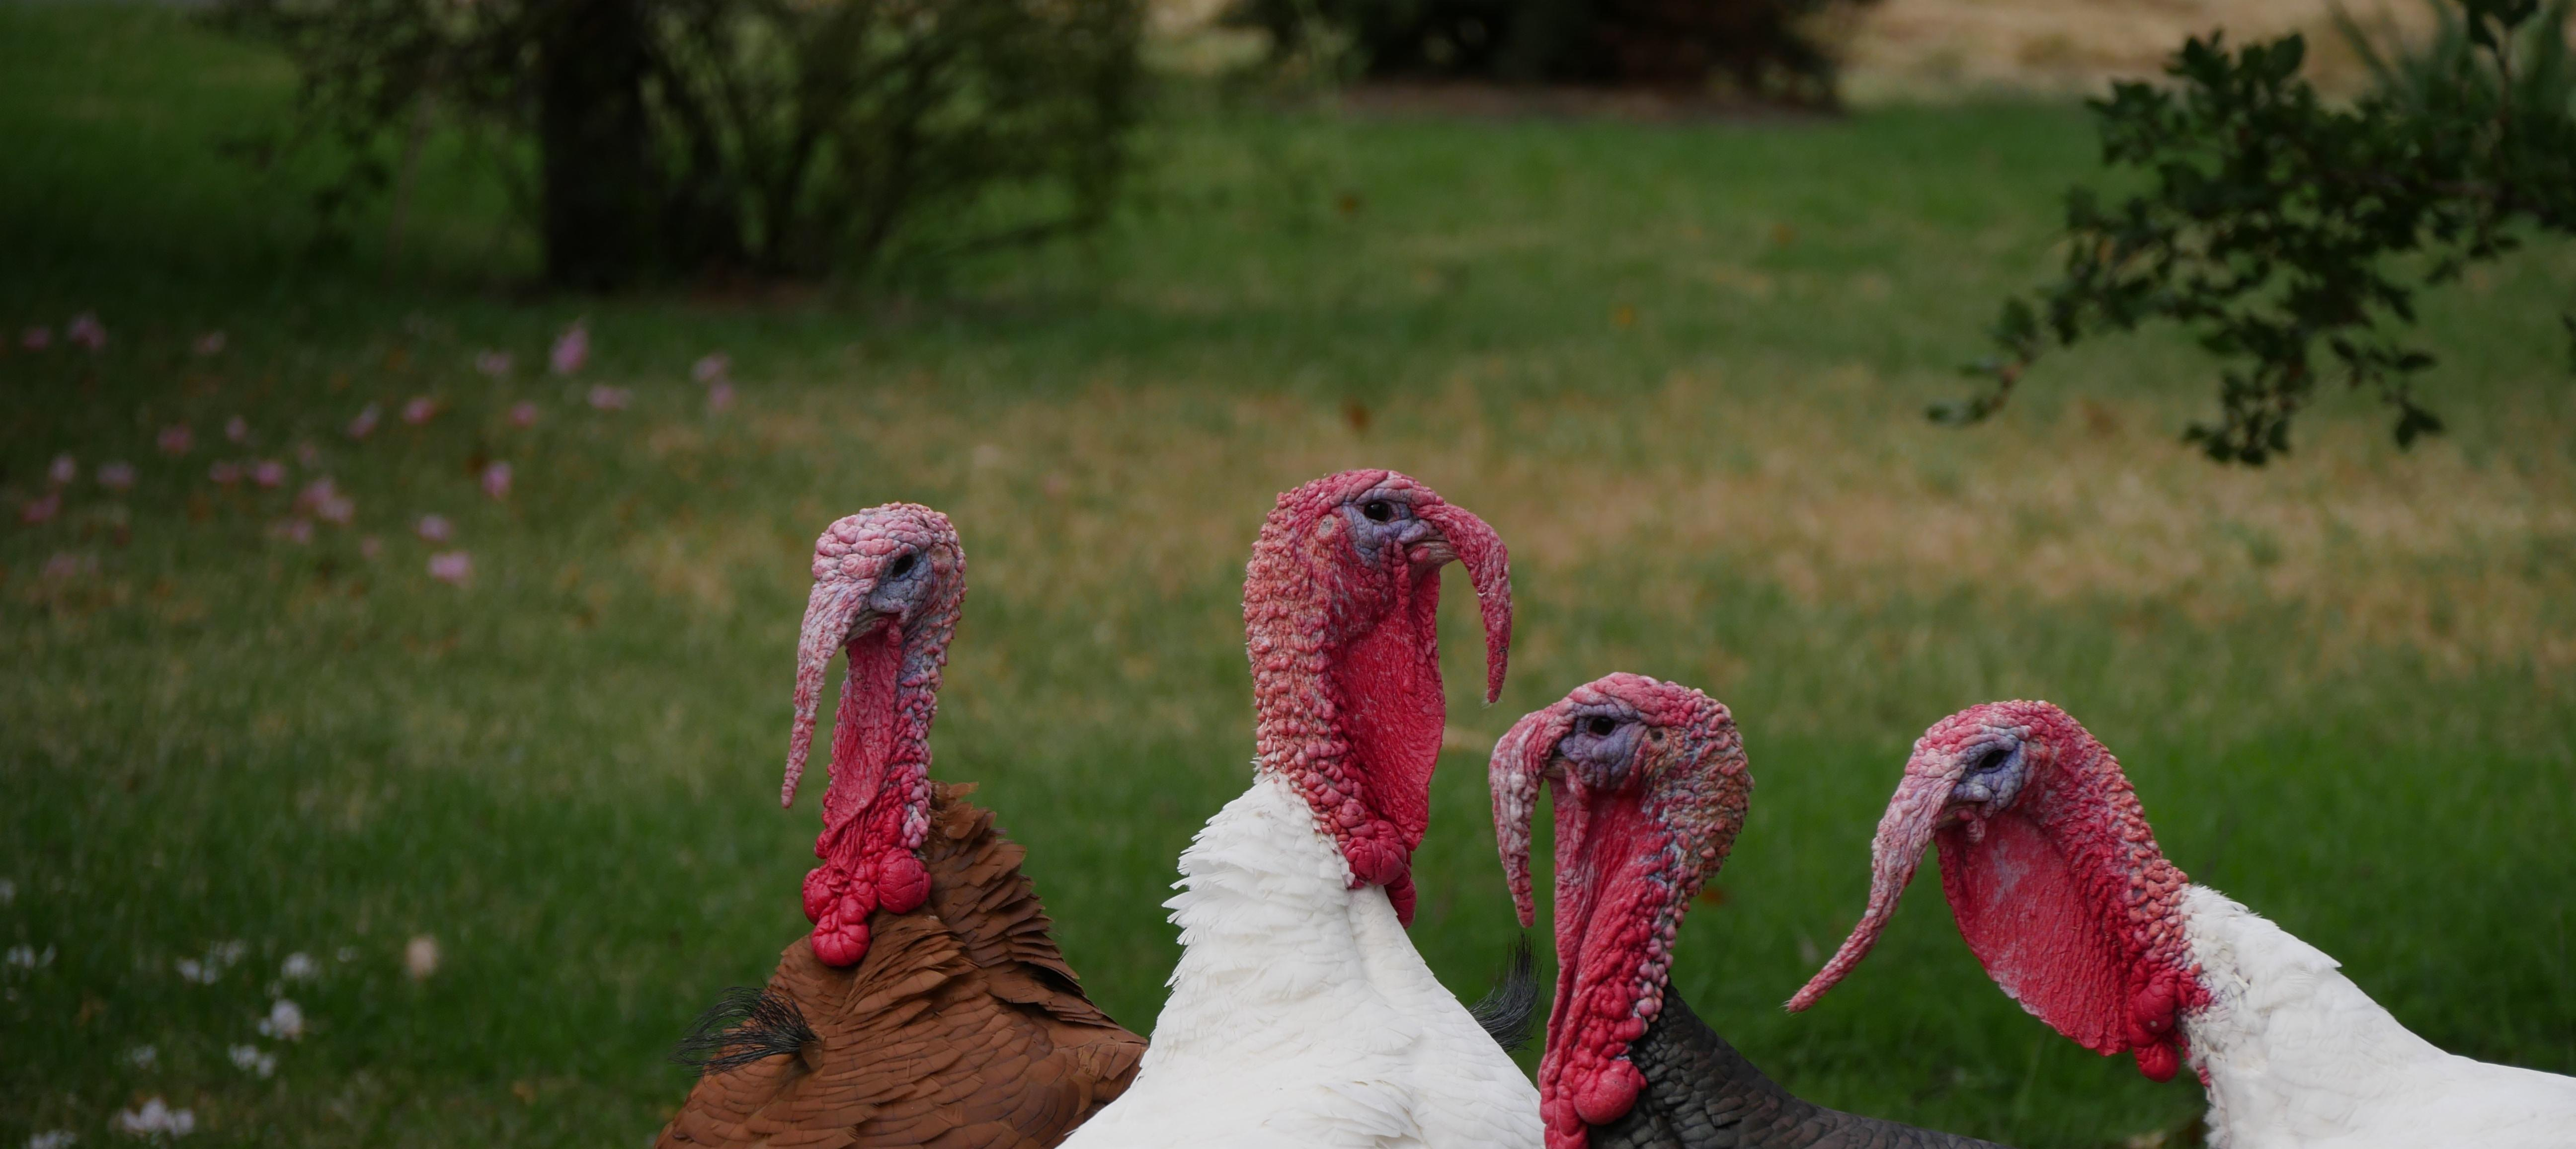 Let's Talk About The Turkey On Your Table